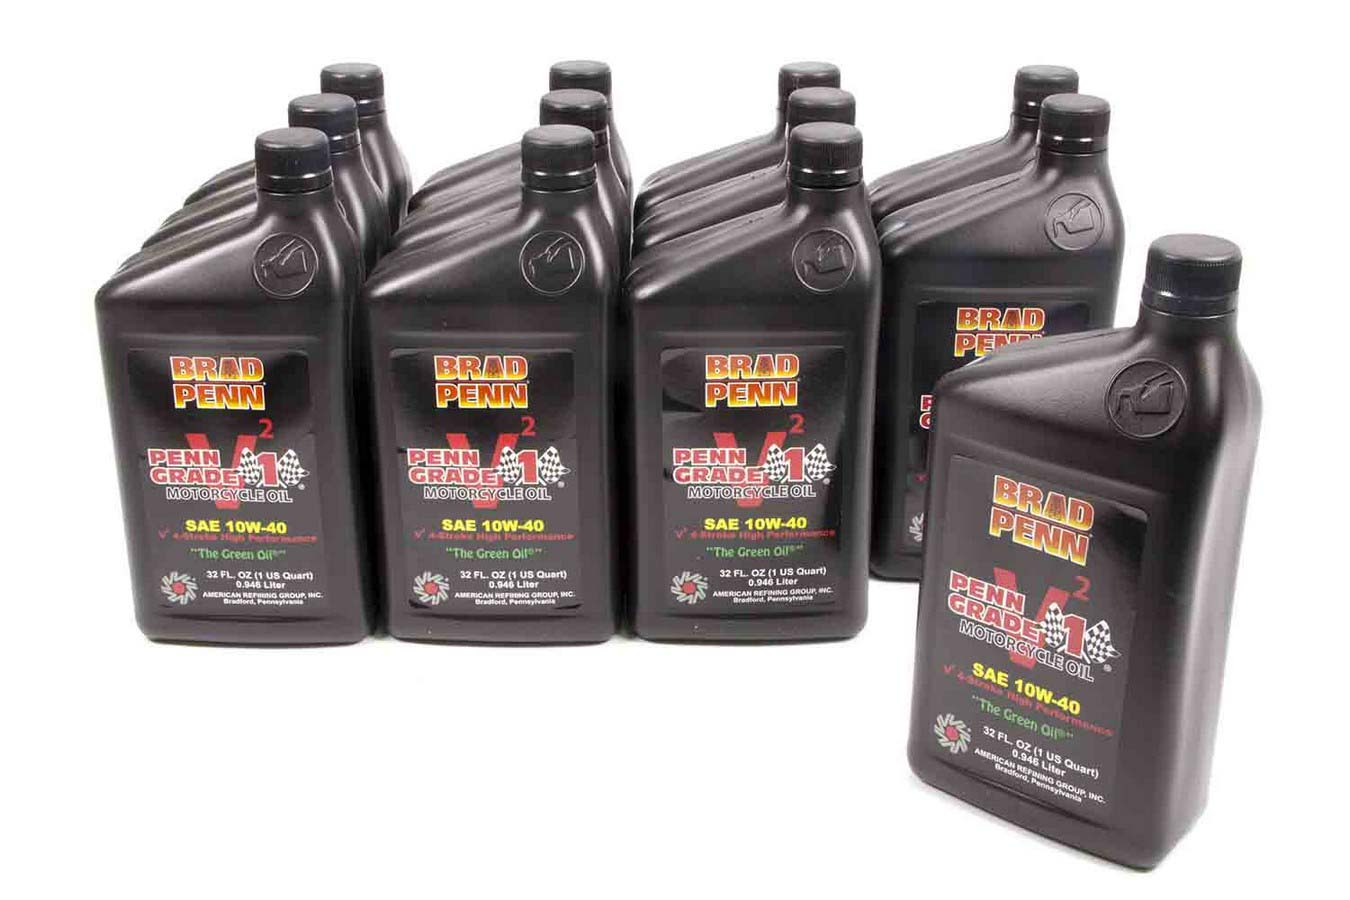 Brad Penn Oil Motorcycle 10w40 Motor Oil 1 Qt Case Of 12 P